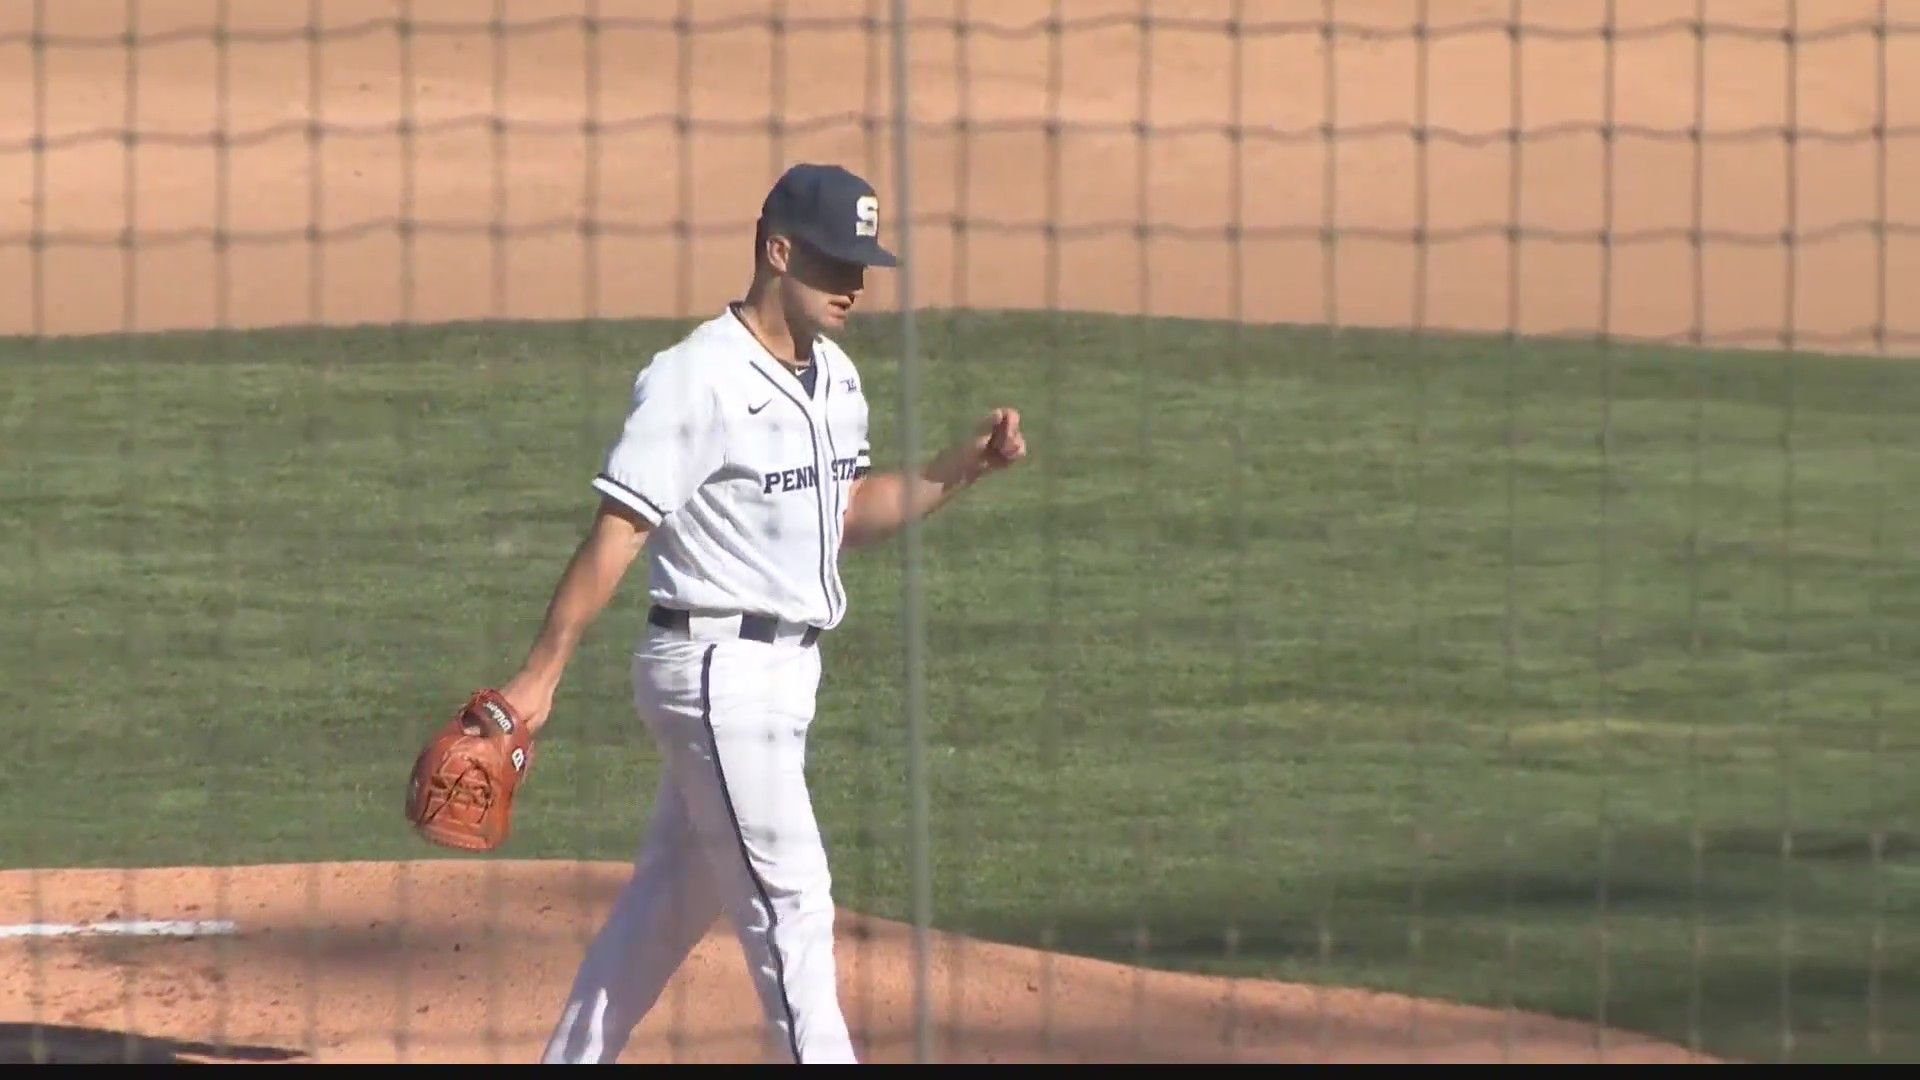 Penn_State_Pitching_Strong_in_Home_Opene_0_20190316031702